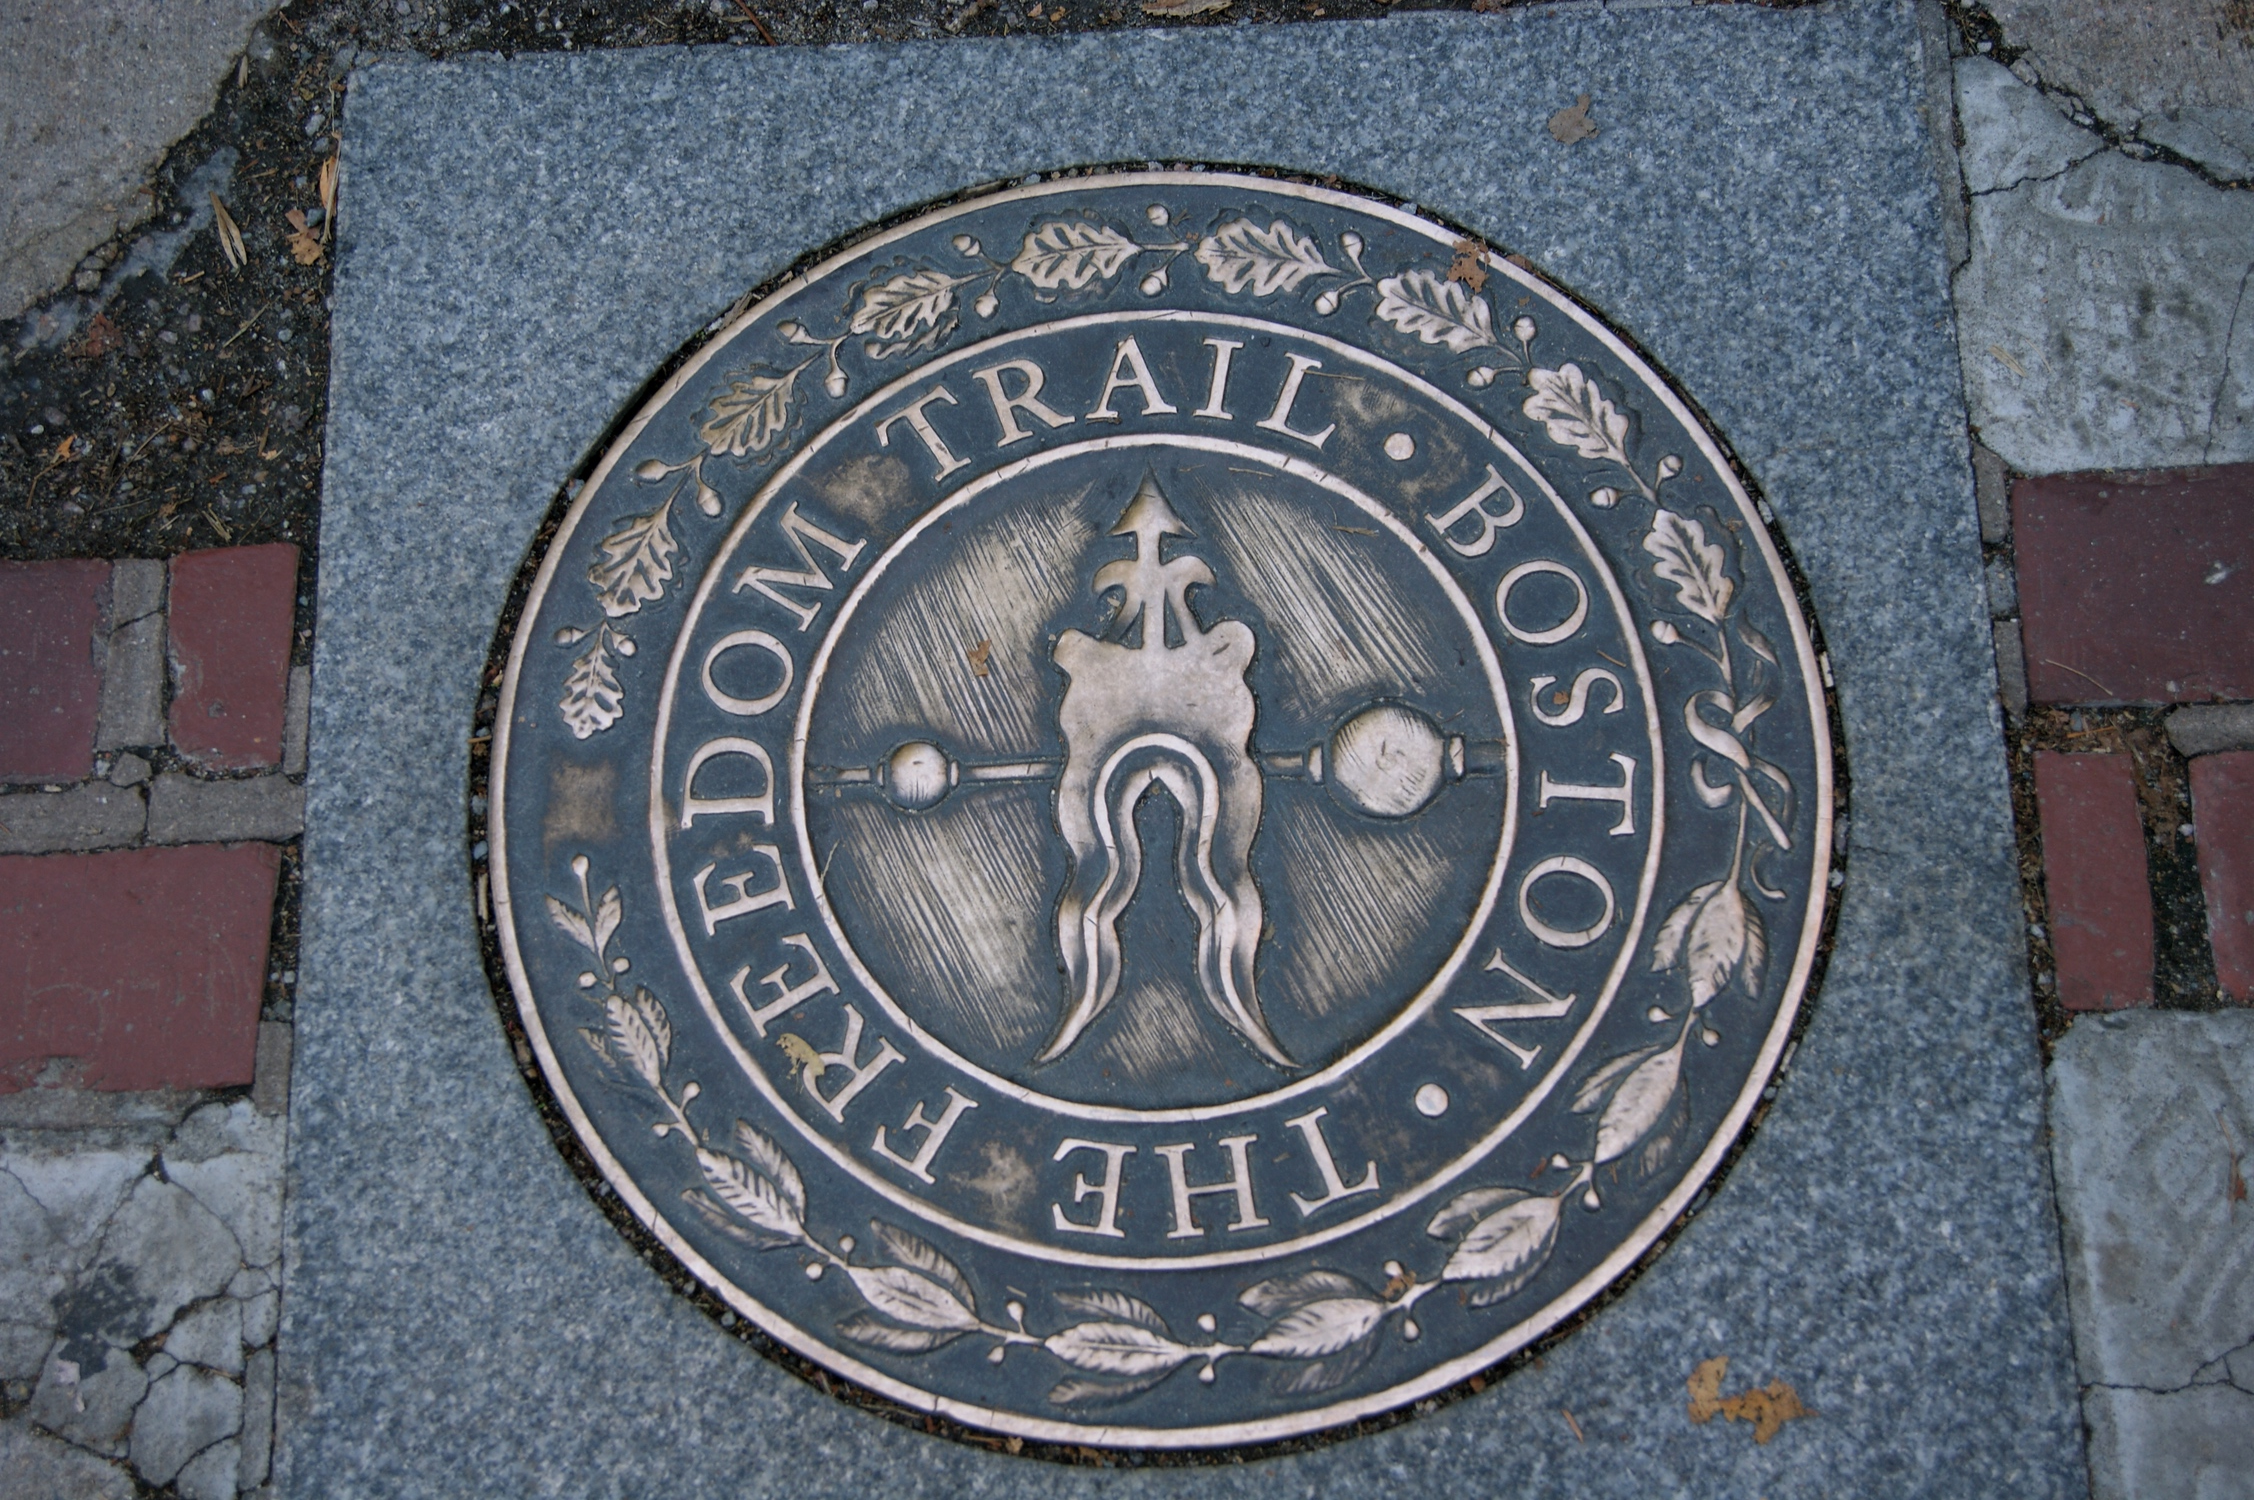 Marking the way of the Freedom Trail, a pedestrian walkway through Boston historical sites